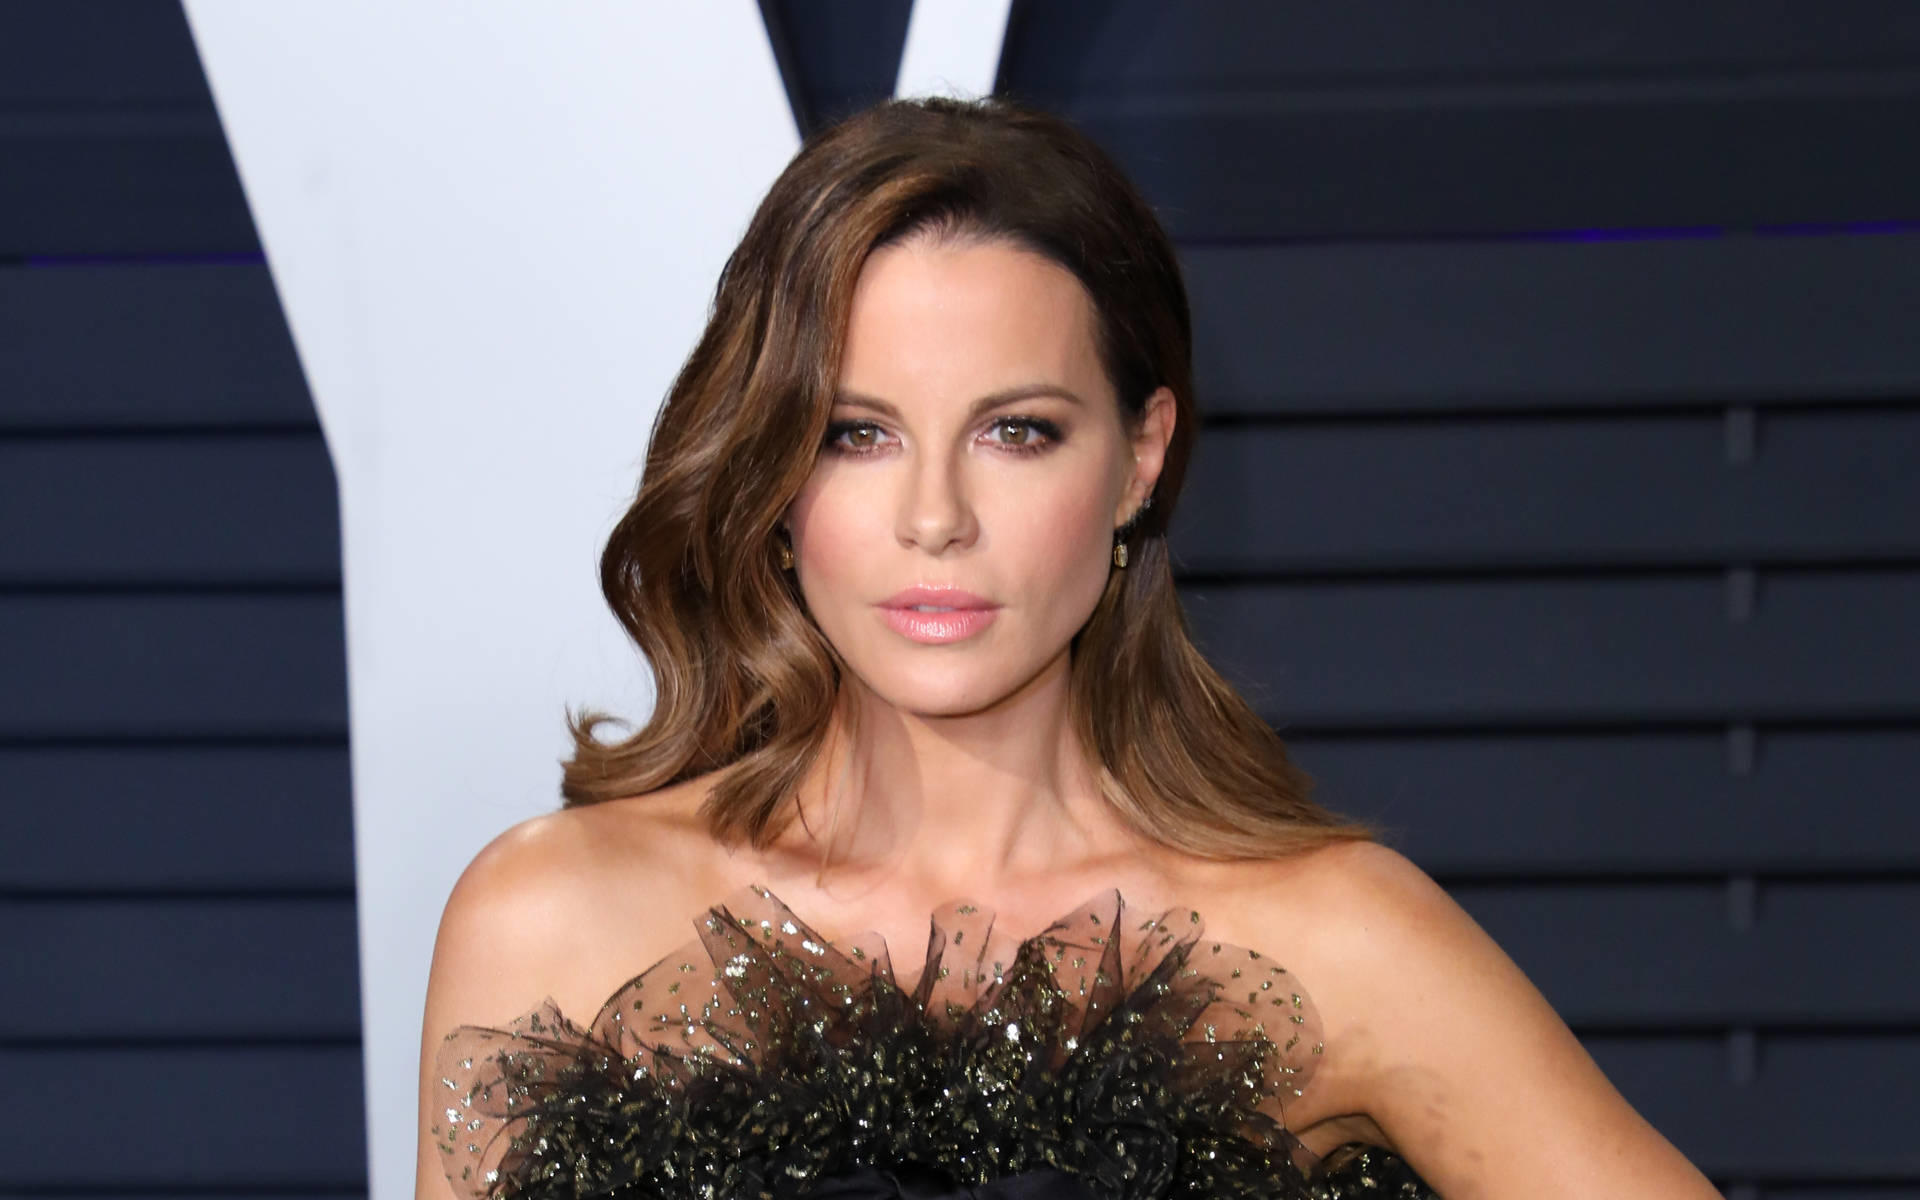 Image result for Kate Beckinsale new photo shoots 2020